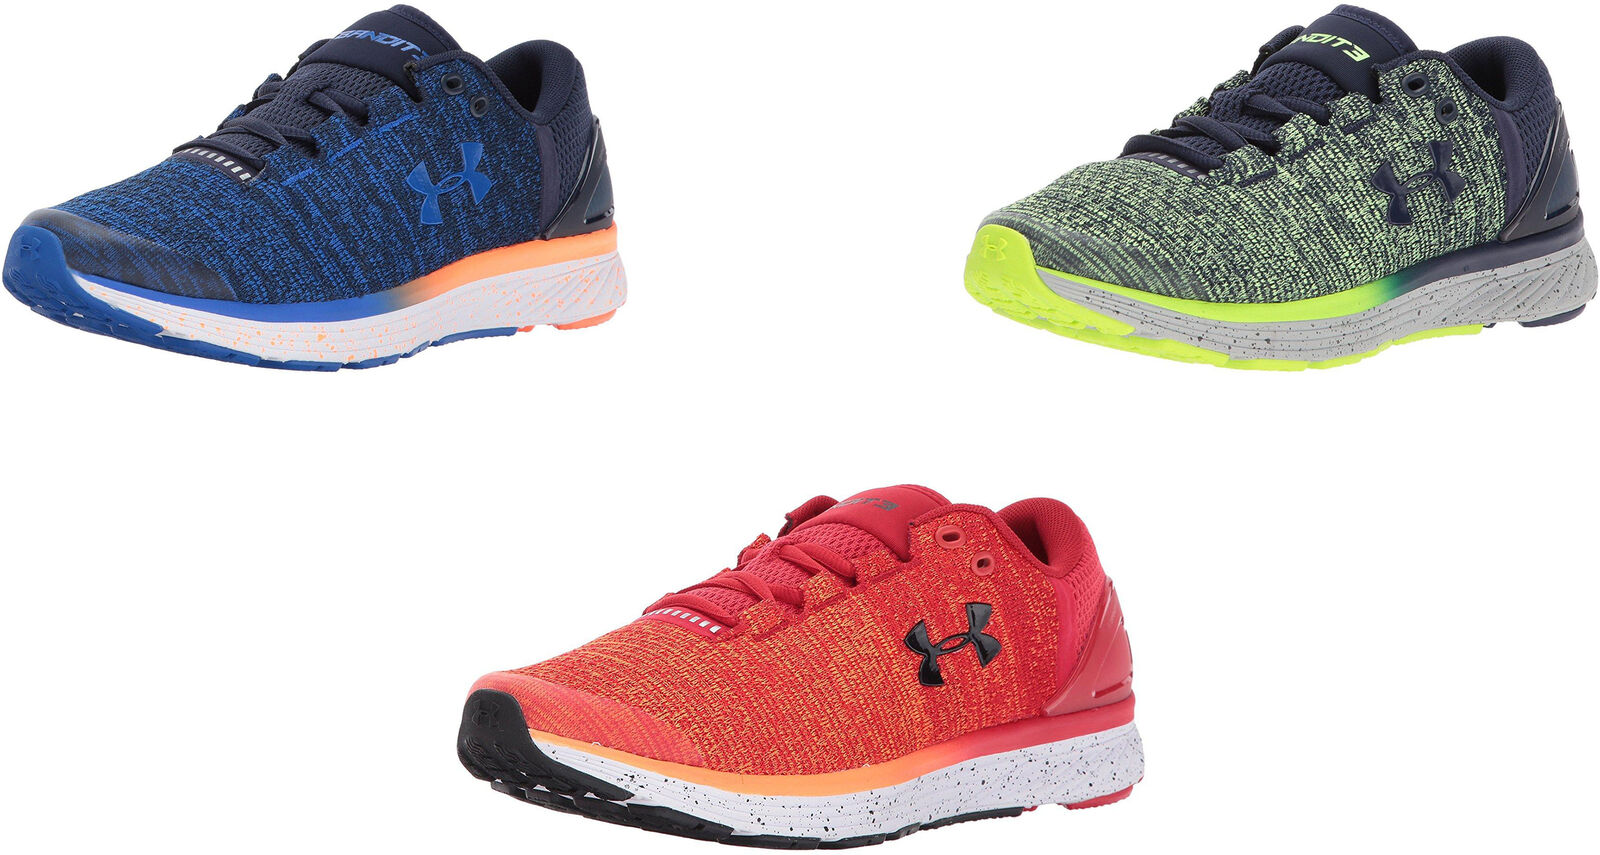 official photos 58cce 58d99 Details about Under Armour Boys' Grade School Charged Bandit 3 Sneakers, 3  Colors